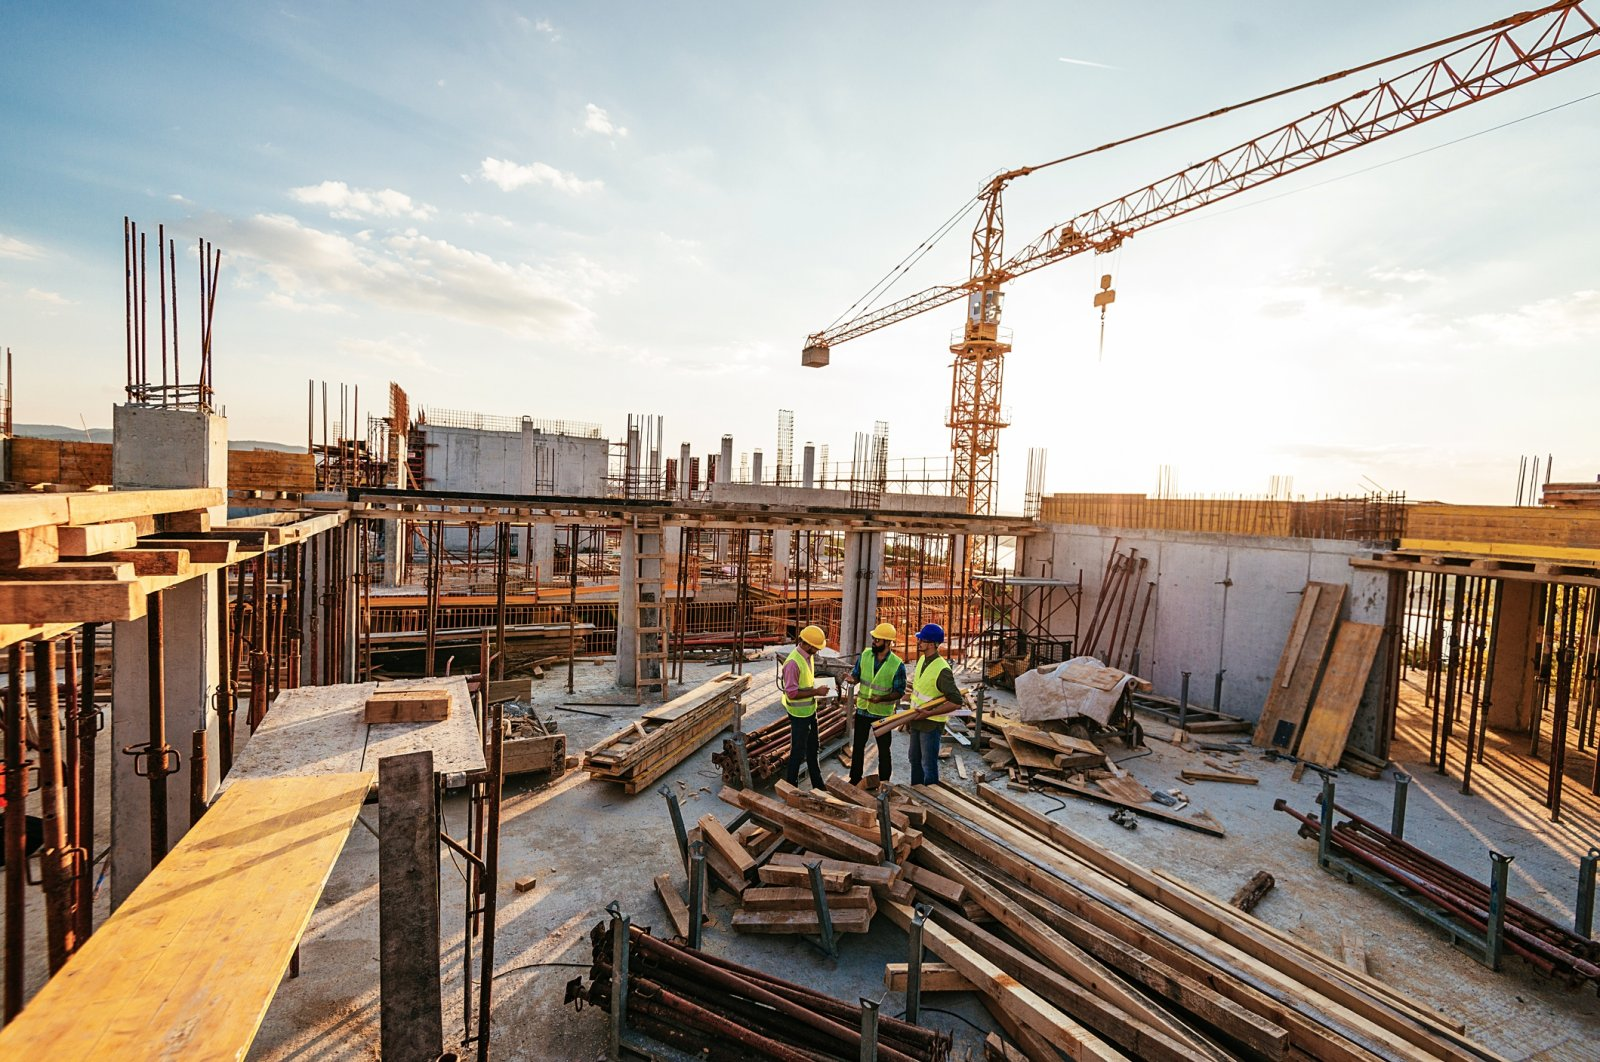 Turkish contractors have undertaken over 10,000 projects, worth more than $400 billion, in some 127 countries so far. (iStock Photo)